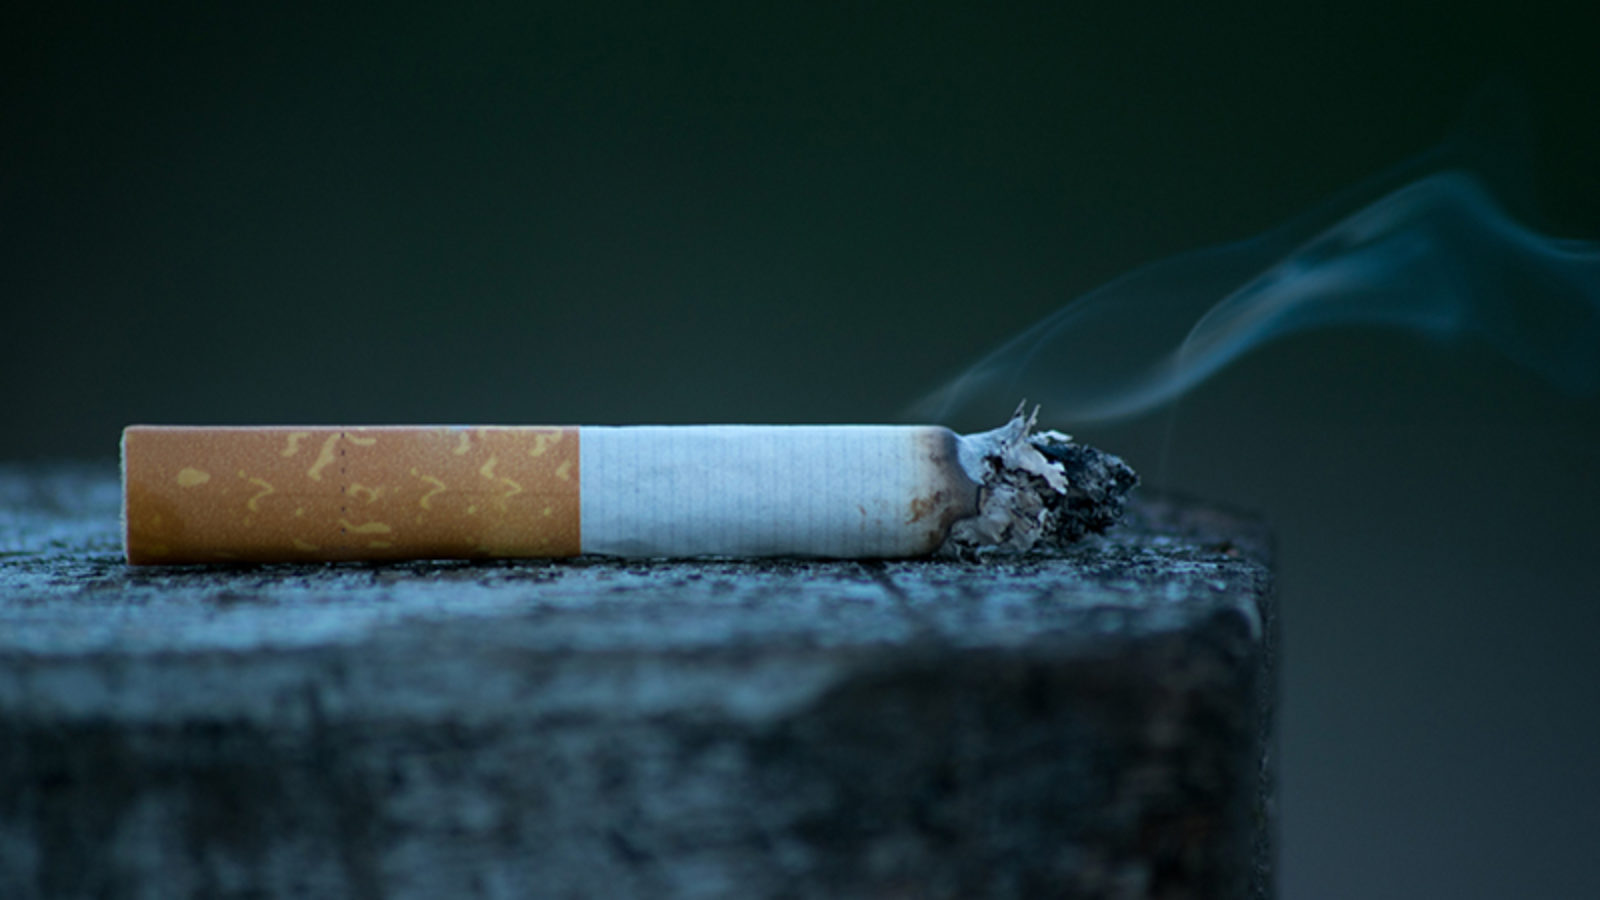 cigarette smoking by itself